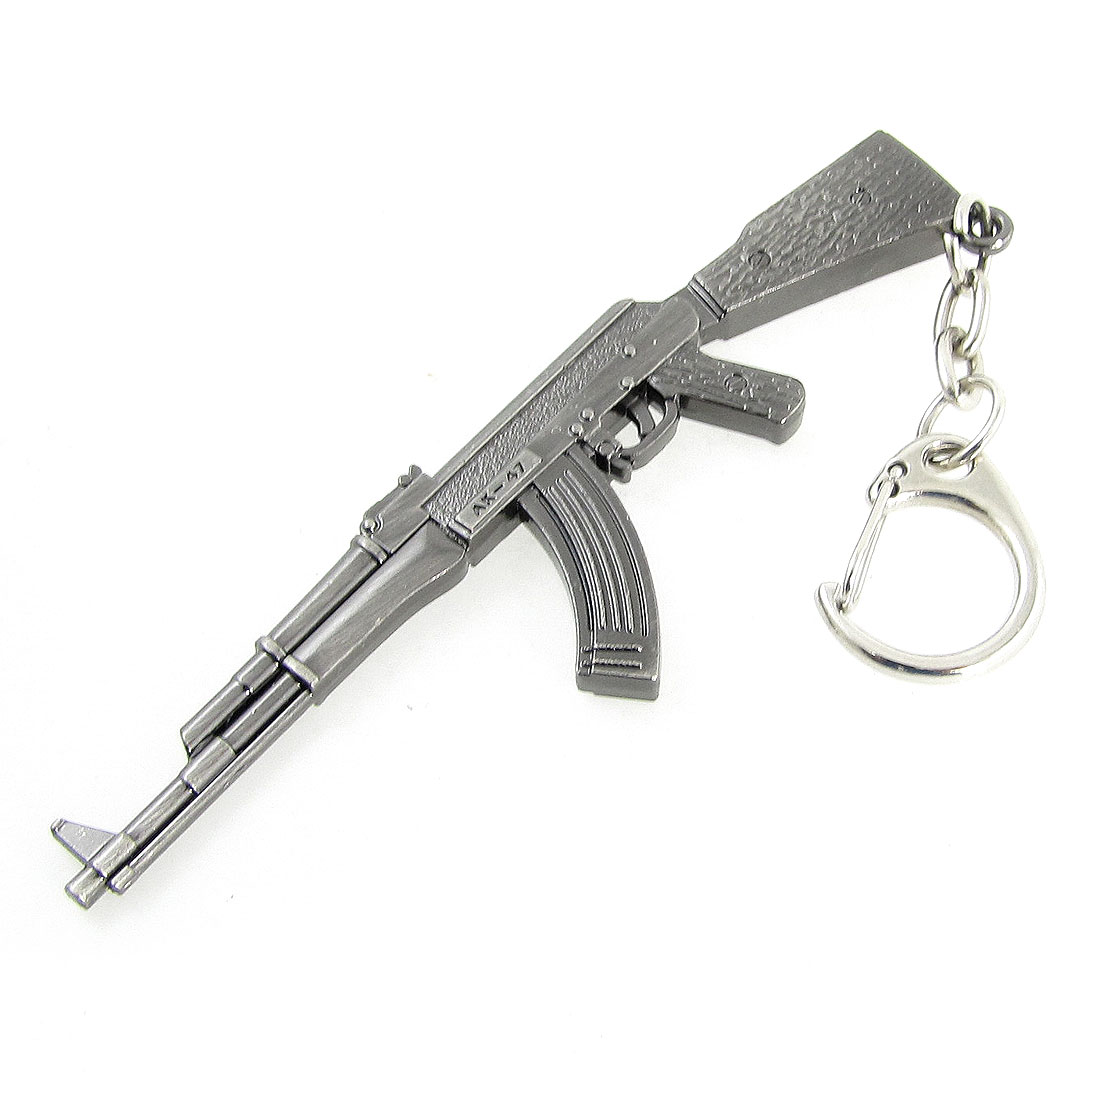 Miniature Rifle Gun Model Hook Keychain Keyring Pendant Gray 5.4 Inch Length